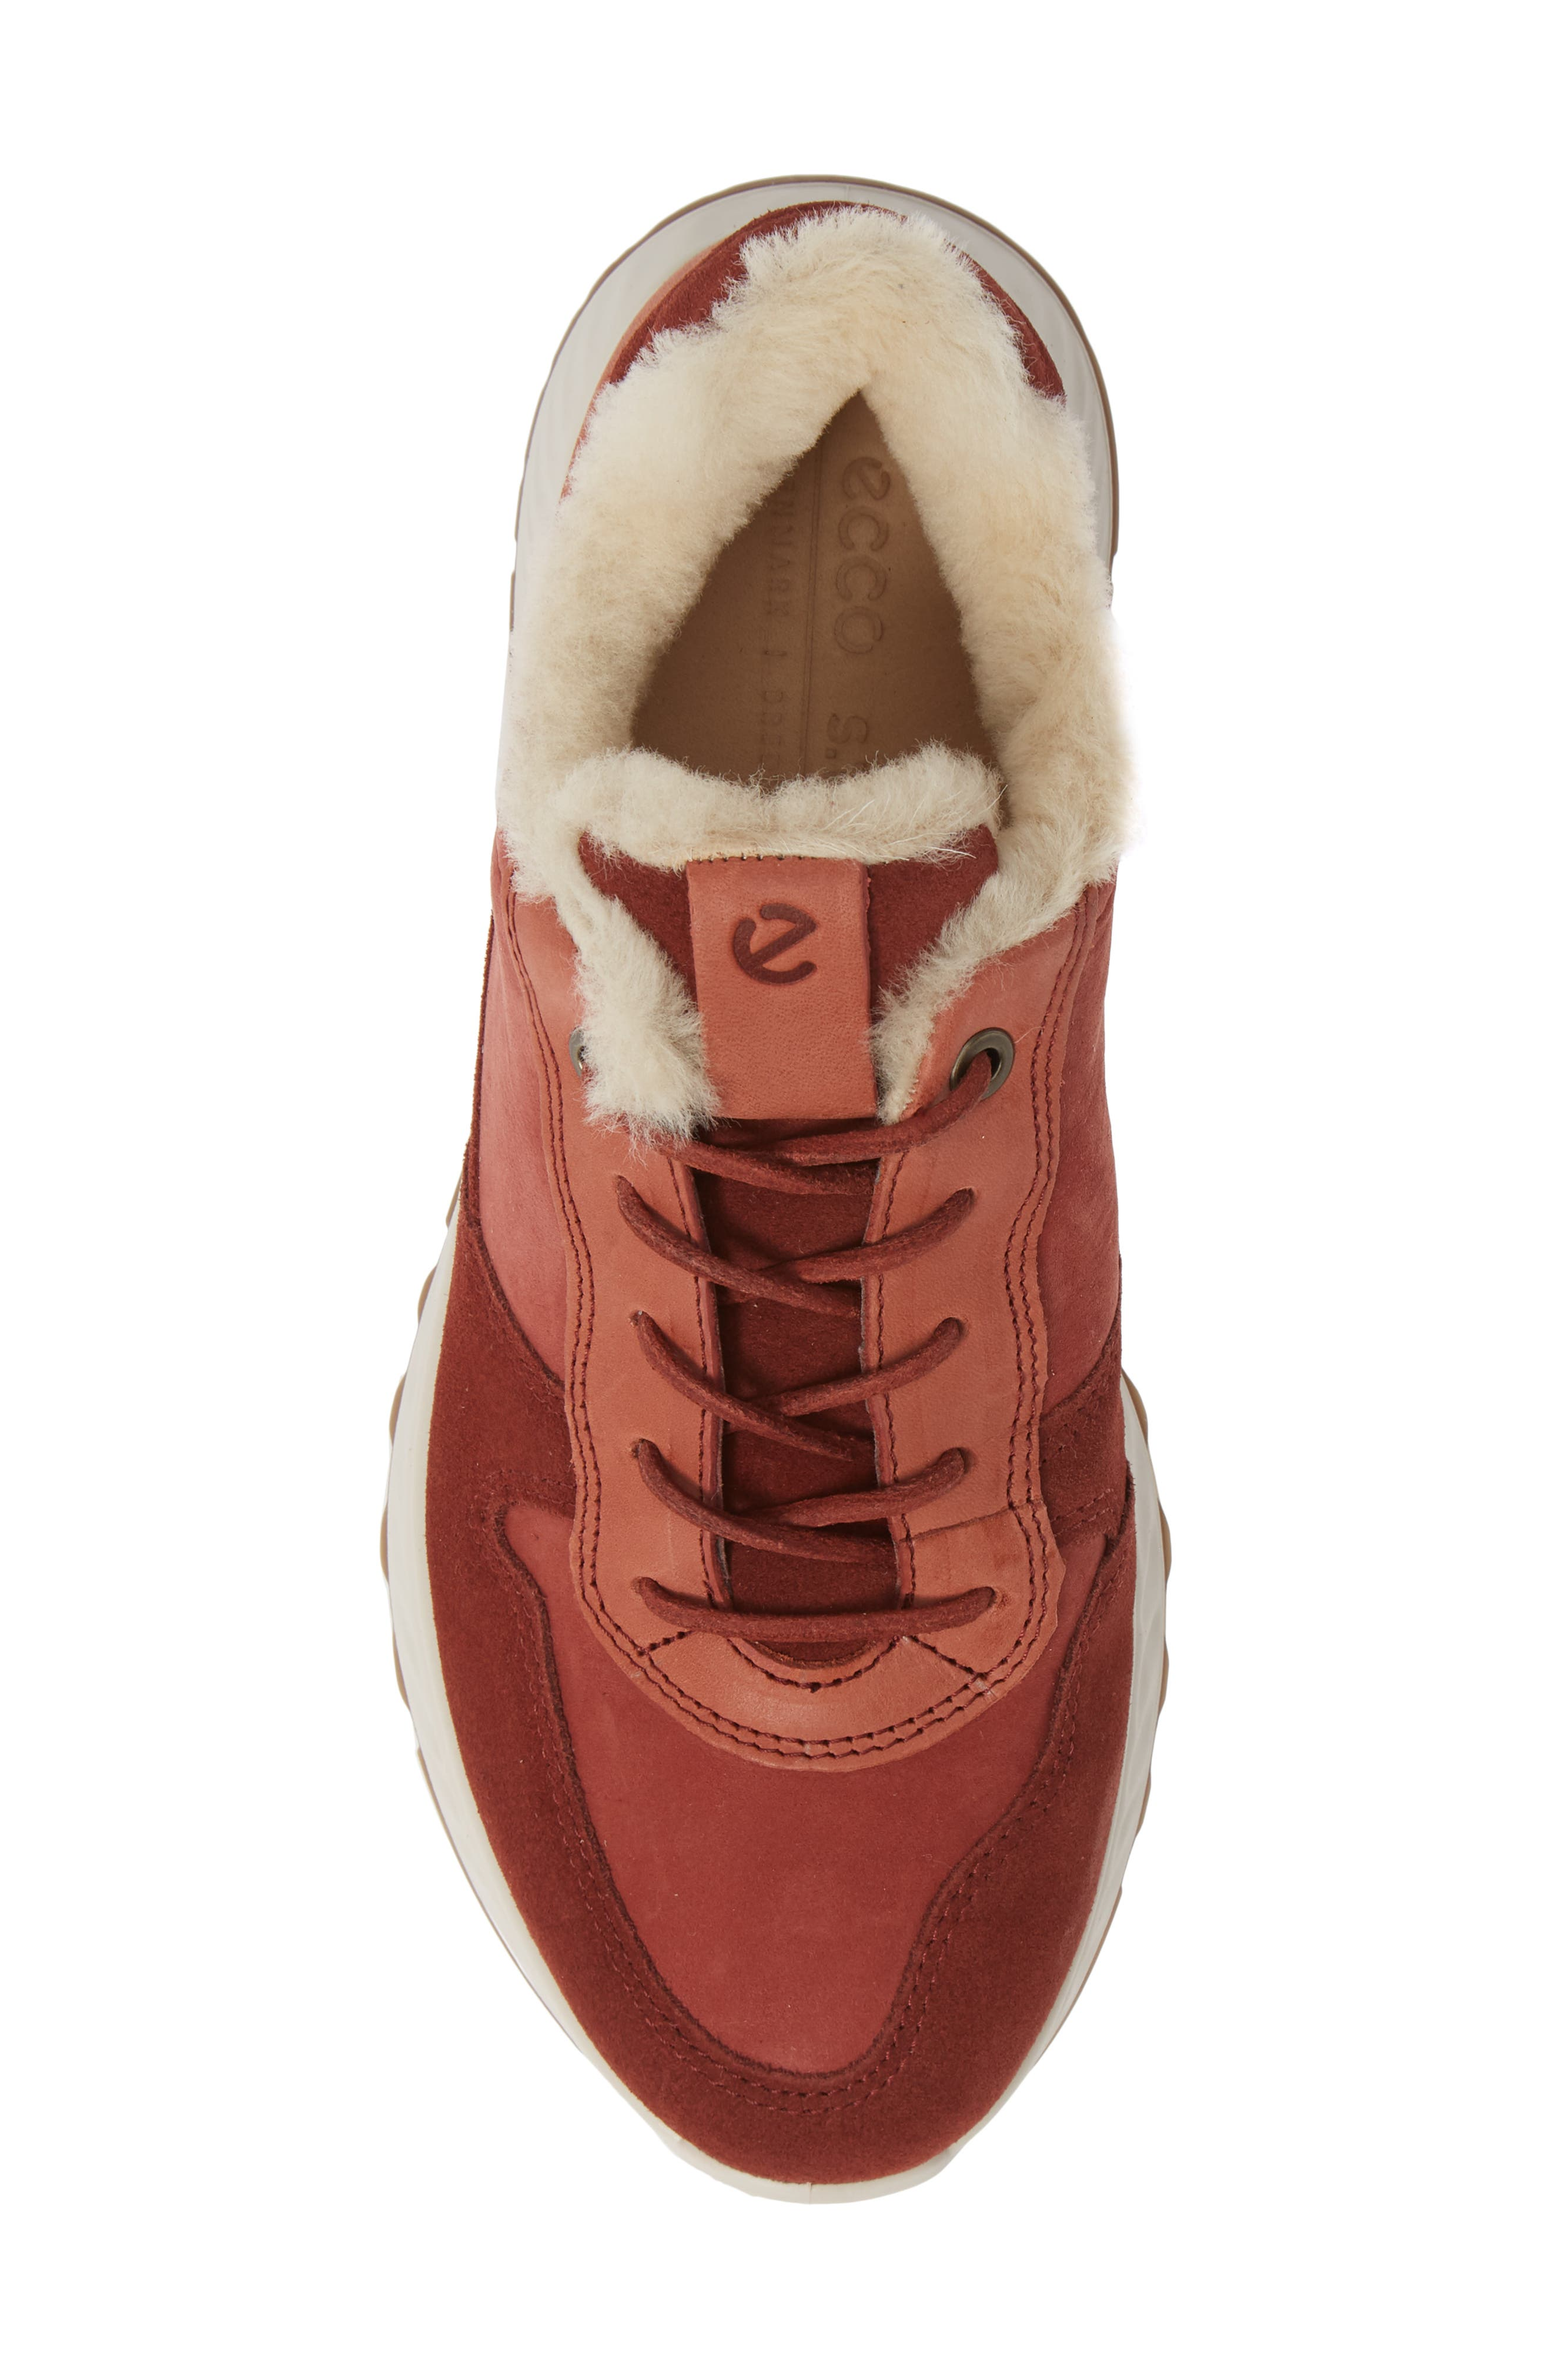 ST1 Genuine Shearling Sneaker,                             Alternate thumbnail 5, color,                             FIRED BRICK NUBUCK LEATHER